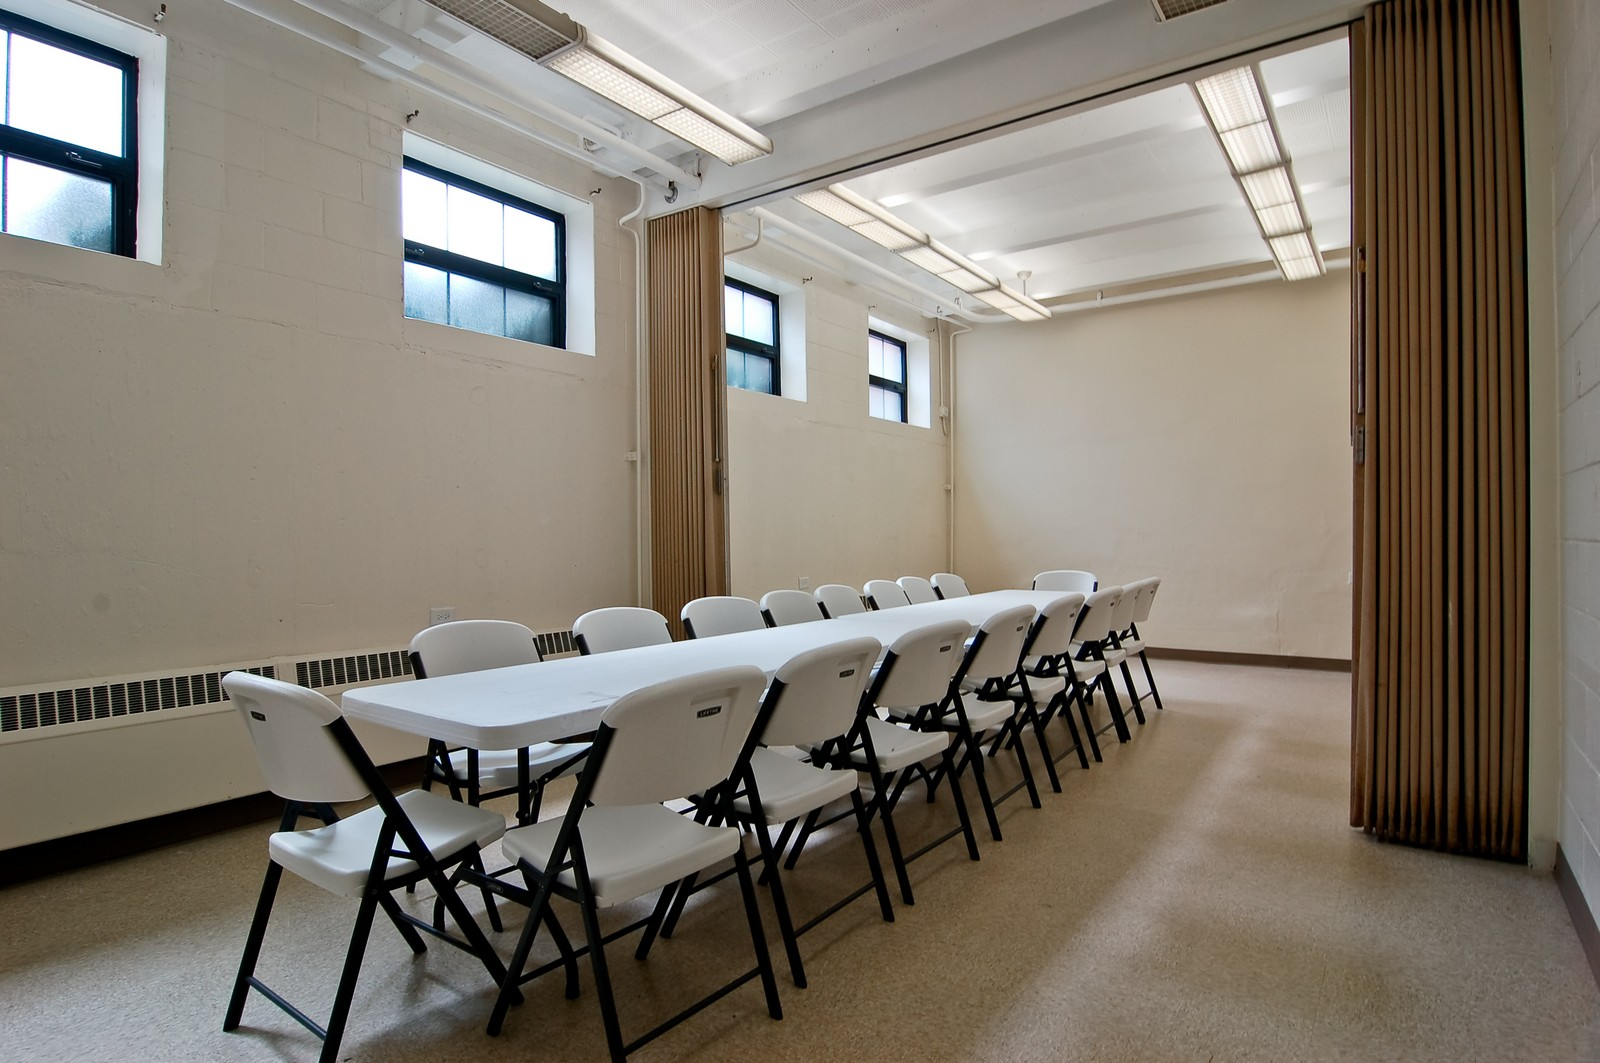 Real Estate Photography - 7534 W Berwyn Ave, Chicago, IL, 60656 - Meeting Room